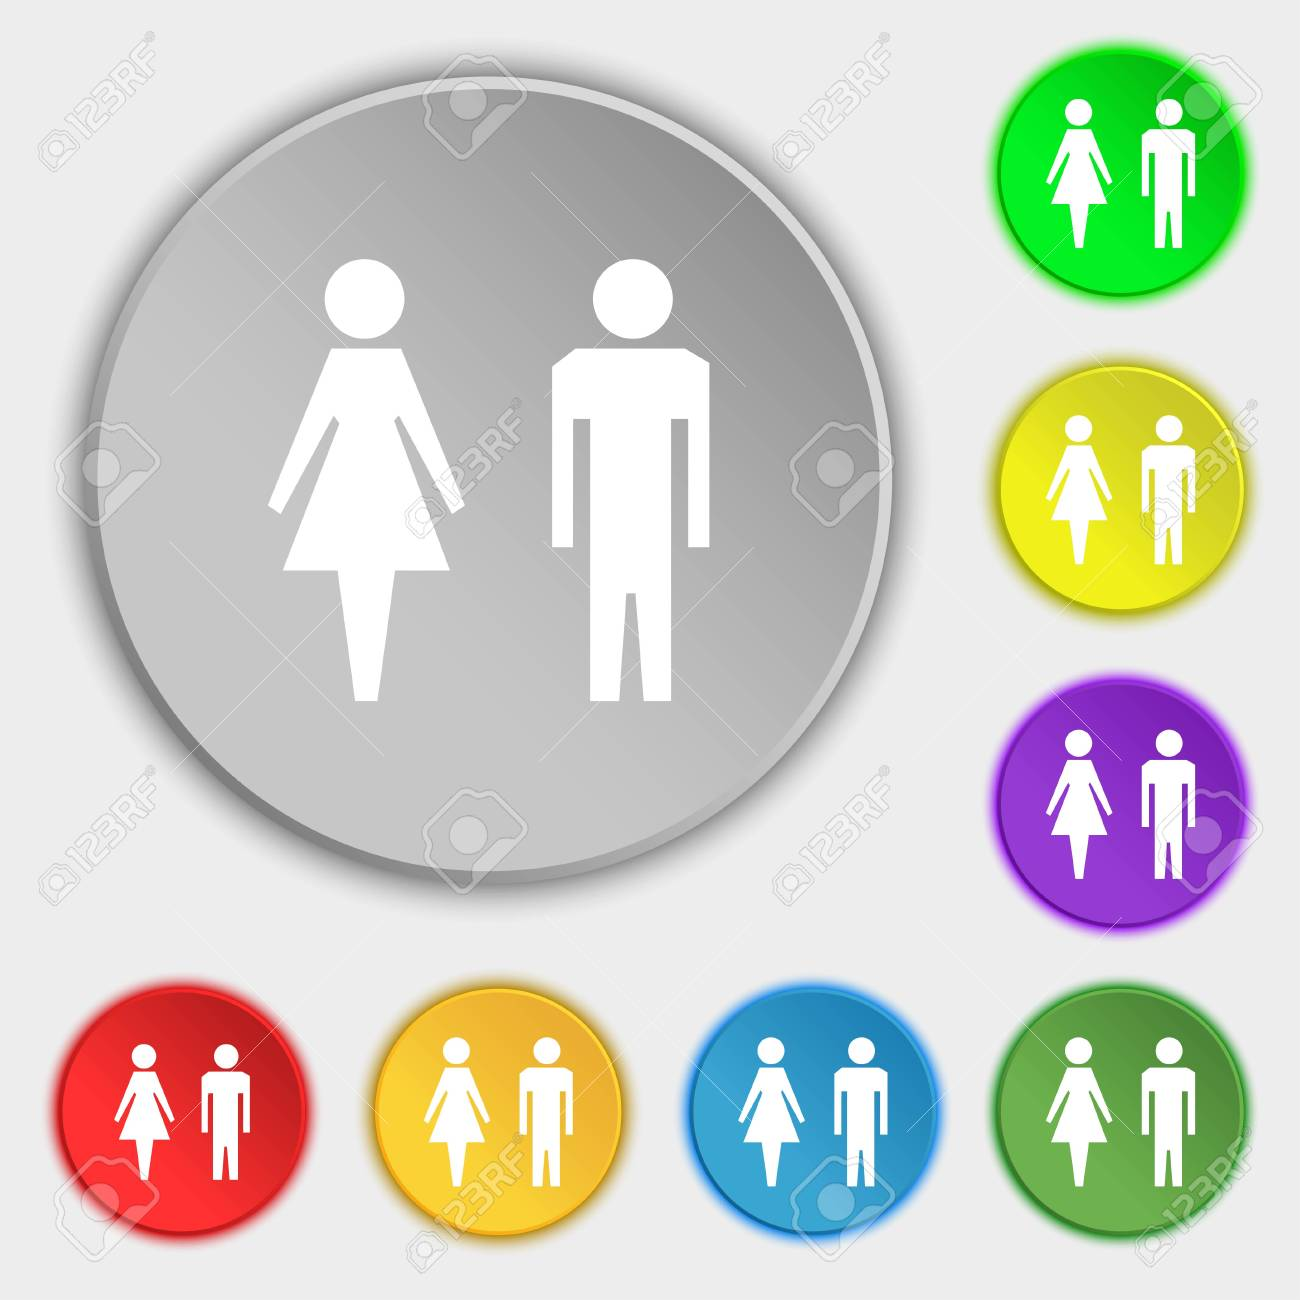 Wc Sign Icon Toilet Symbol Male And Female Toilet Symbols Stock